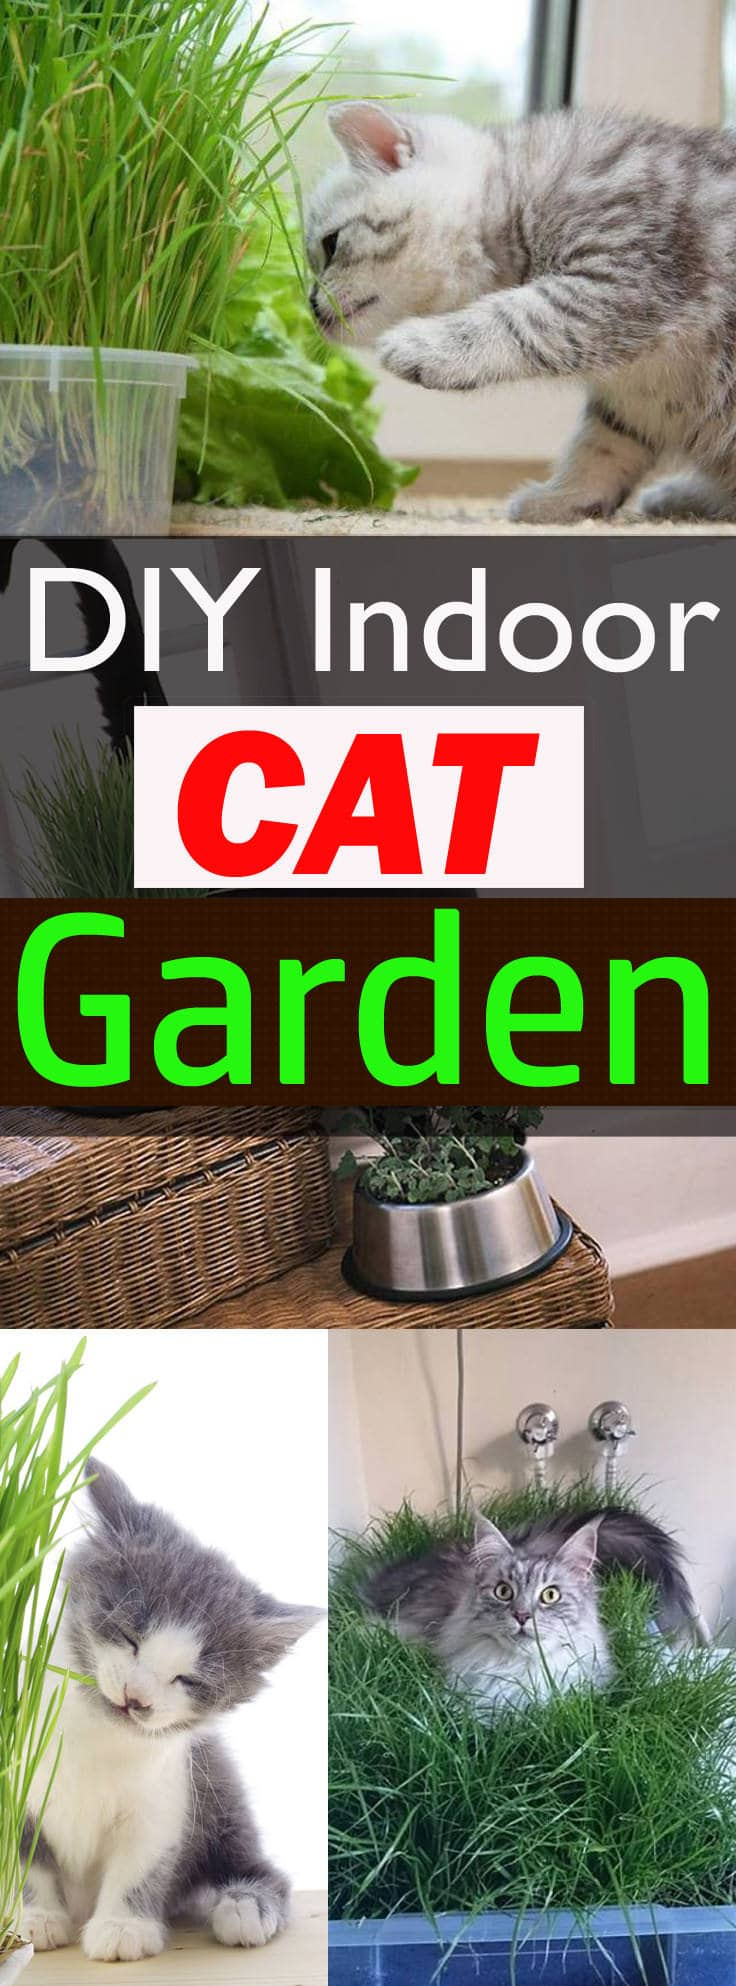 If You Love Your Cat, Itu0027s A Good Idea To Make An Indoor Cat Garden